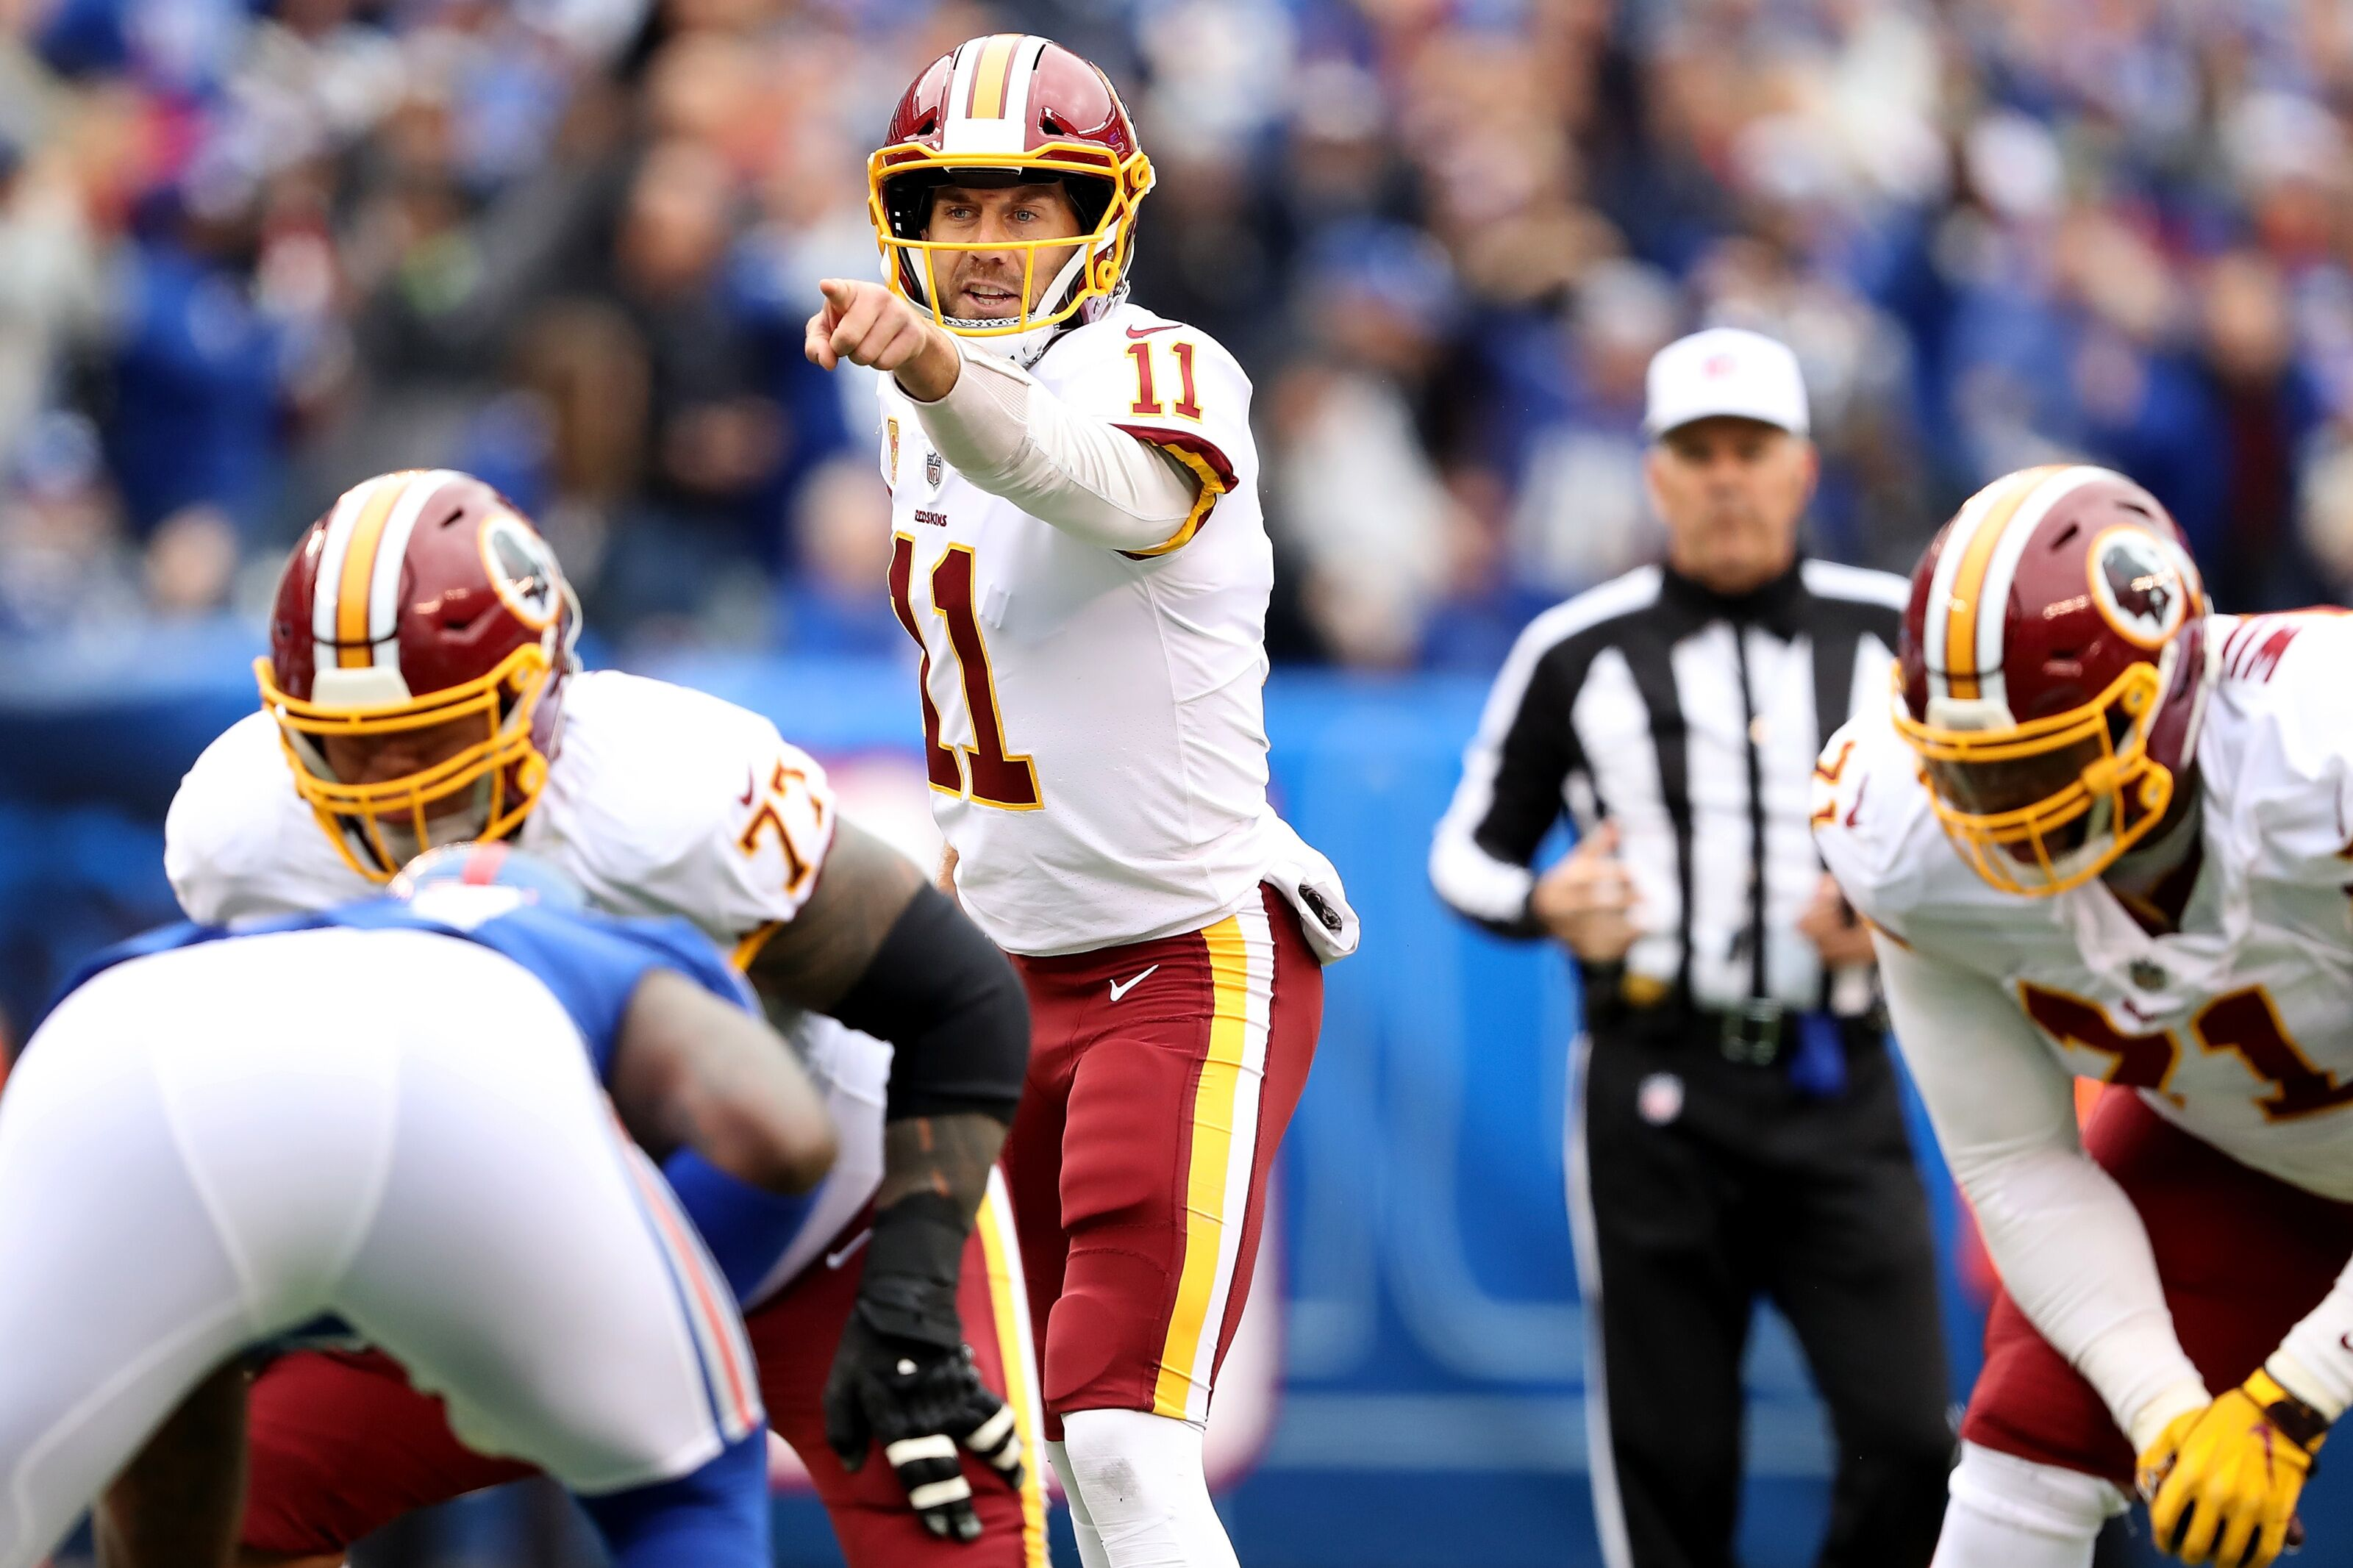 Alex Smith has leg brace removed eight months after leg injury